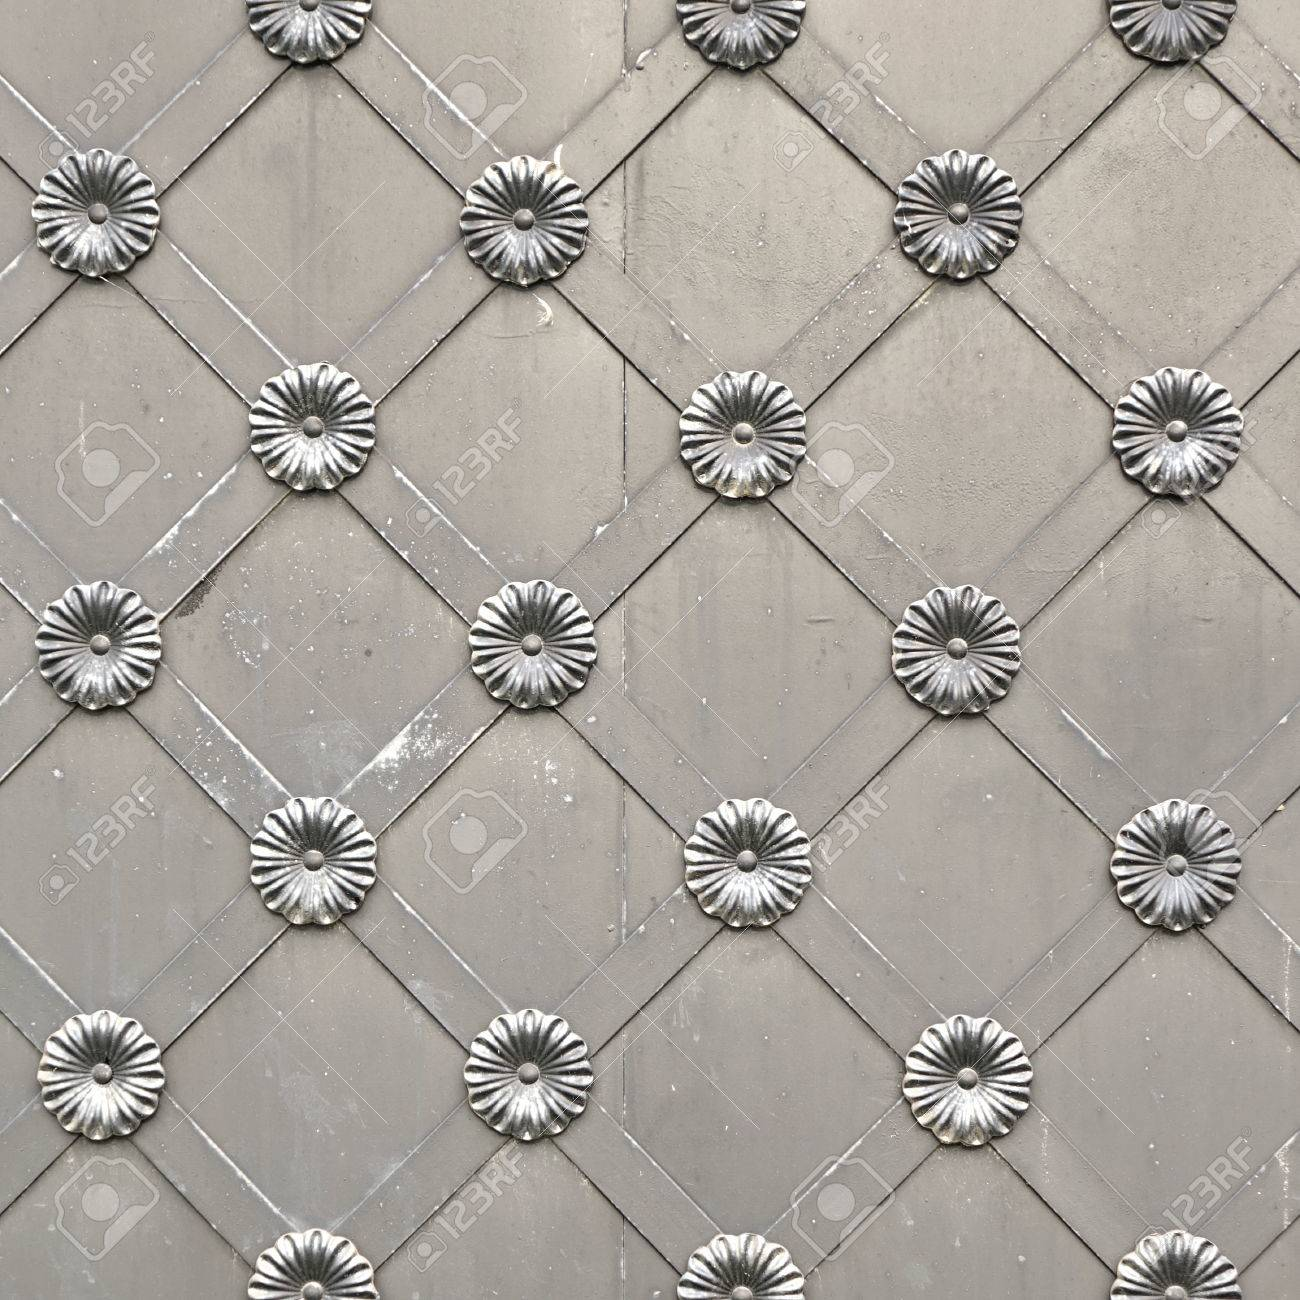 old silver metal gate or door with iron forged decorative grid ornament square background gray